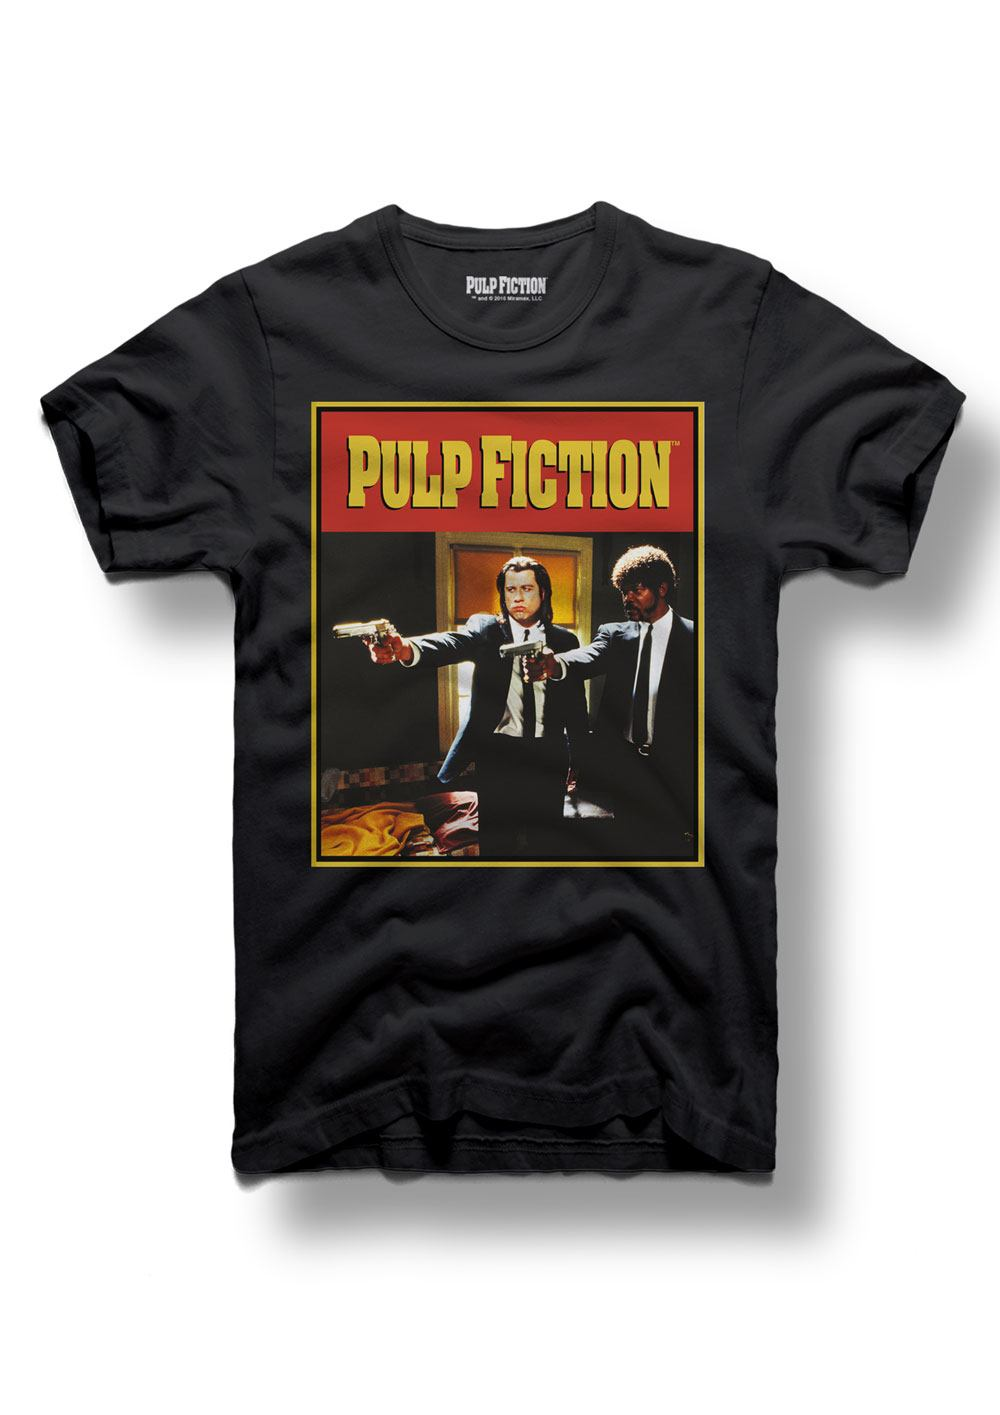 Pulp Fiction T-Shirt Guns Size XL